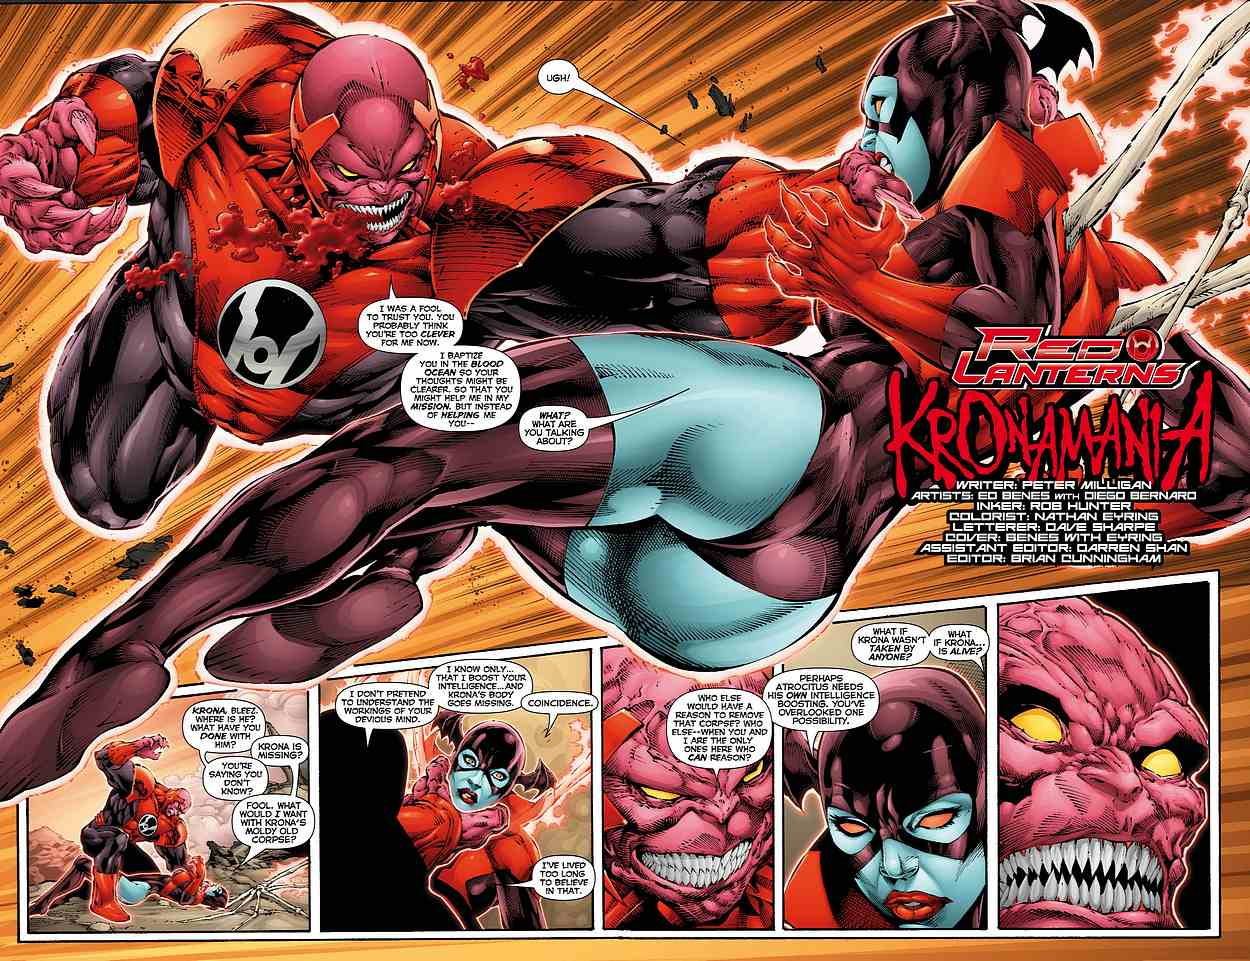 from Junior nude red lantern porn